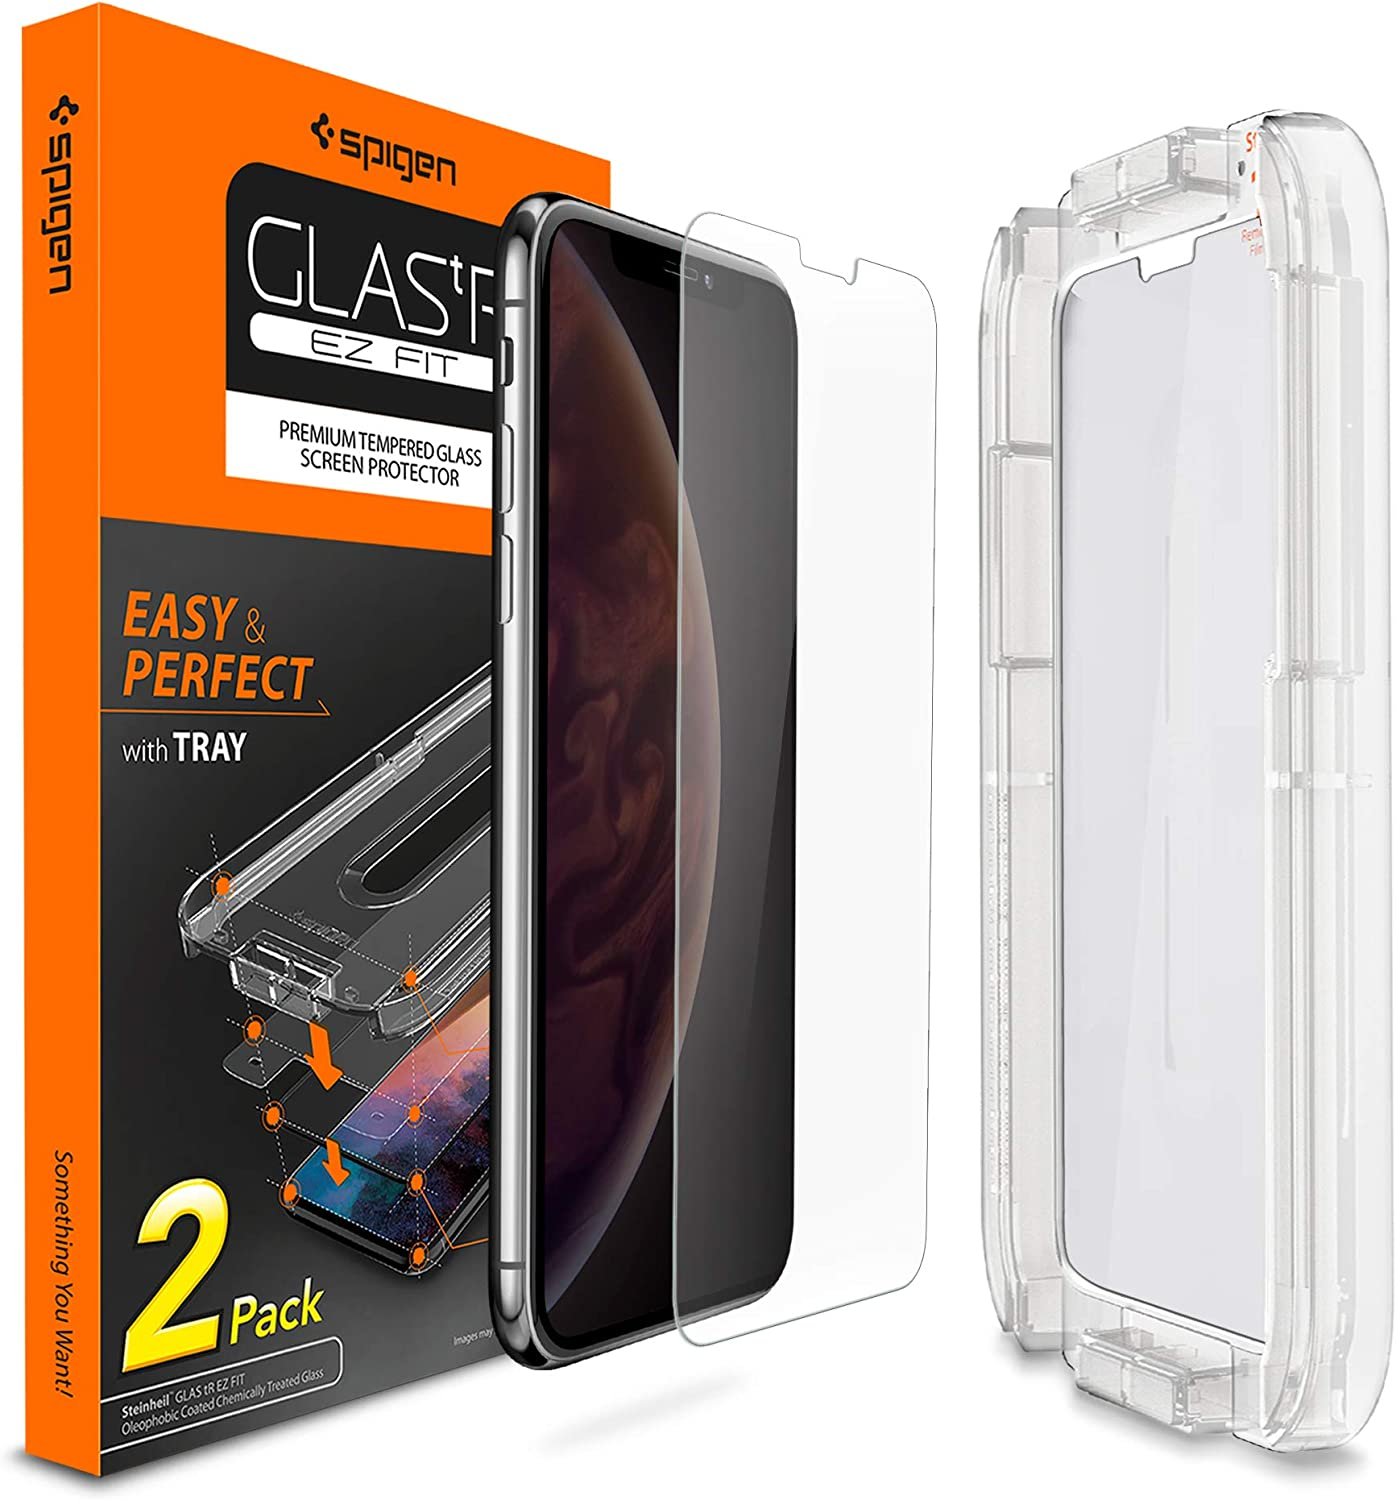 Spigen Tempered Glass Screen Protector [Installation Kit] Designed for iPhone Xs/iPhone X [2 Pack] - Sensor Protection